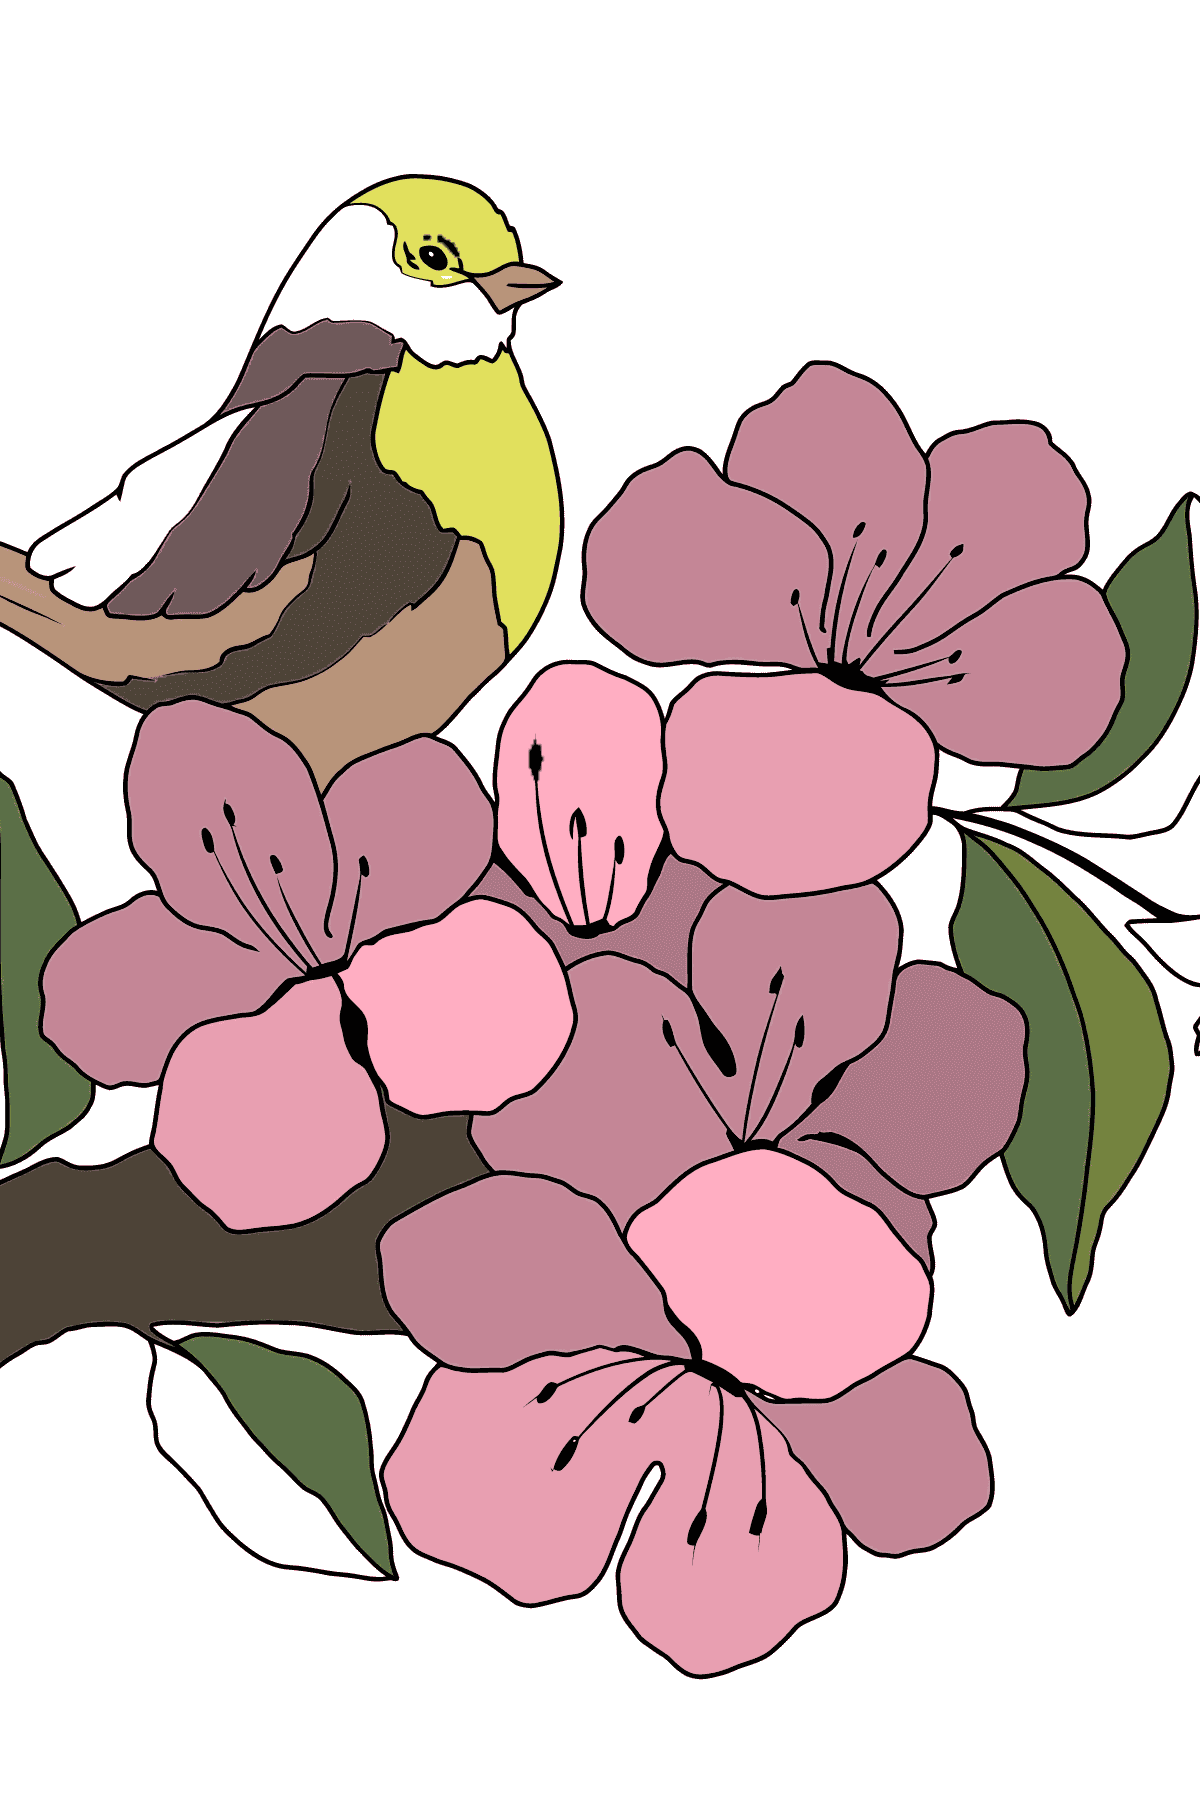 Summer Coloring Page - A Bird is Chirping on the Branch of an Apple Tree for Kids